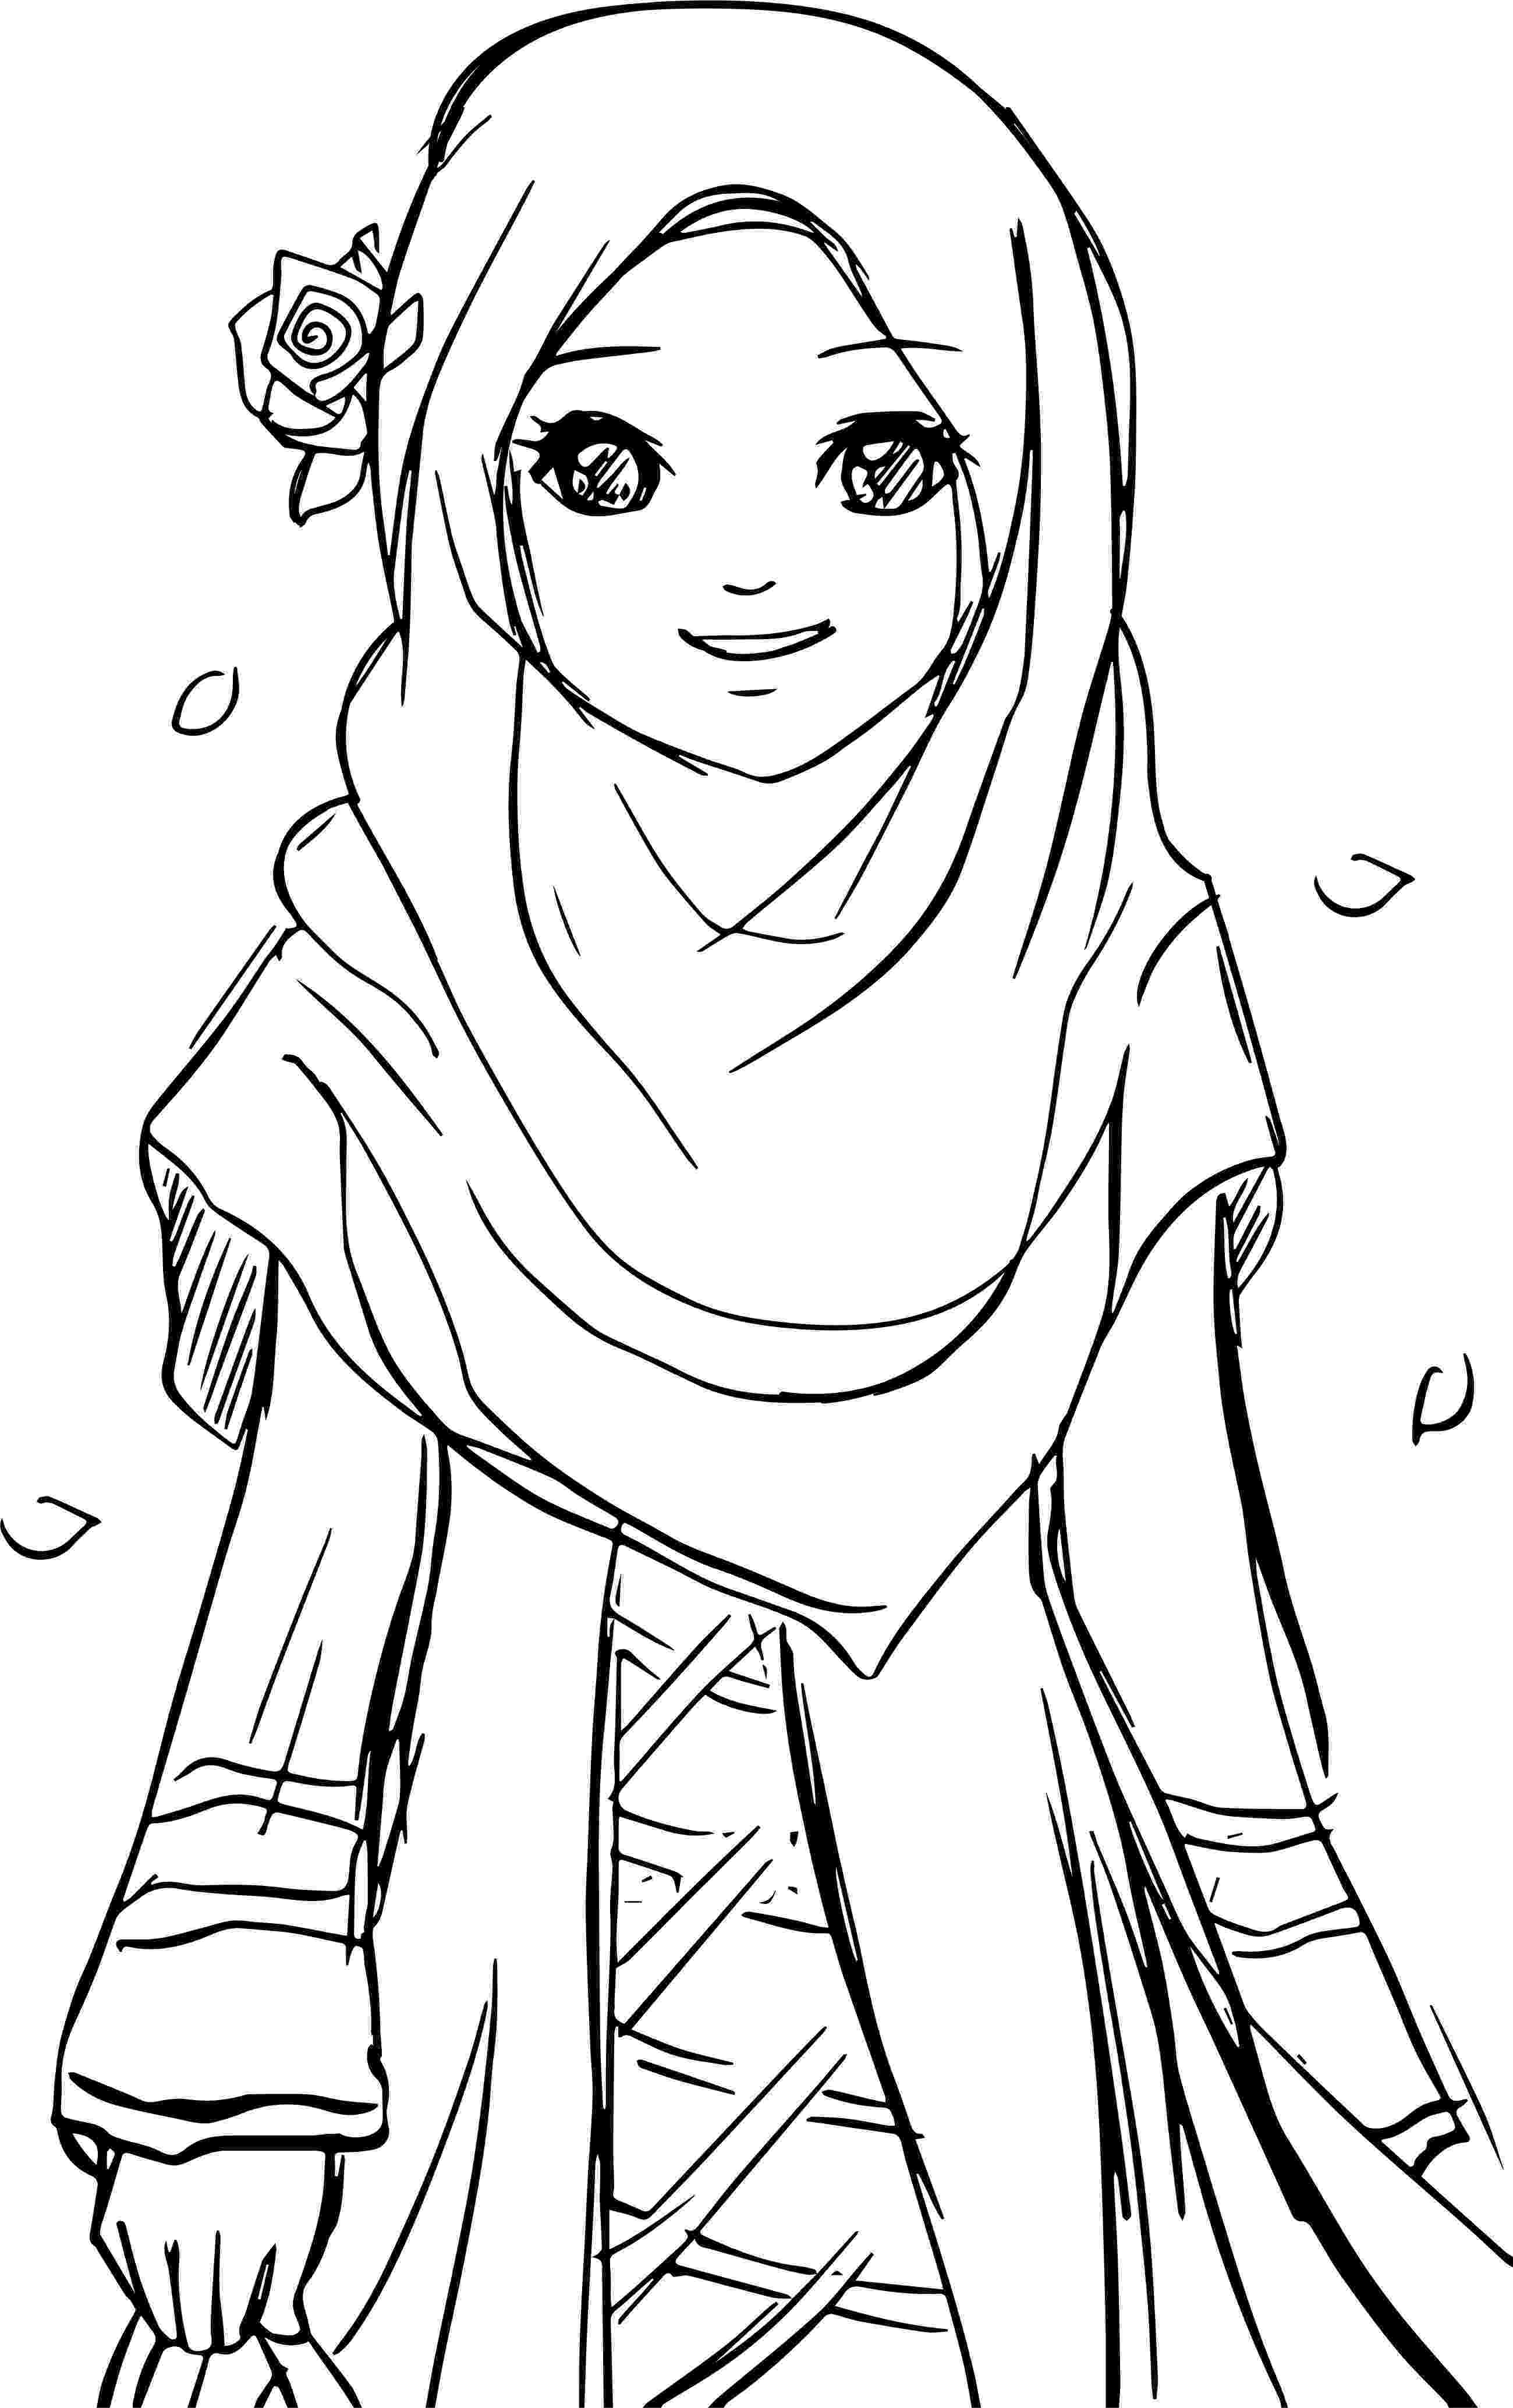 islamic coloring pages 45 best hijabi coloring pages images on pinterest pages islamic coloring